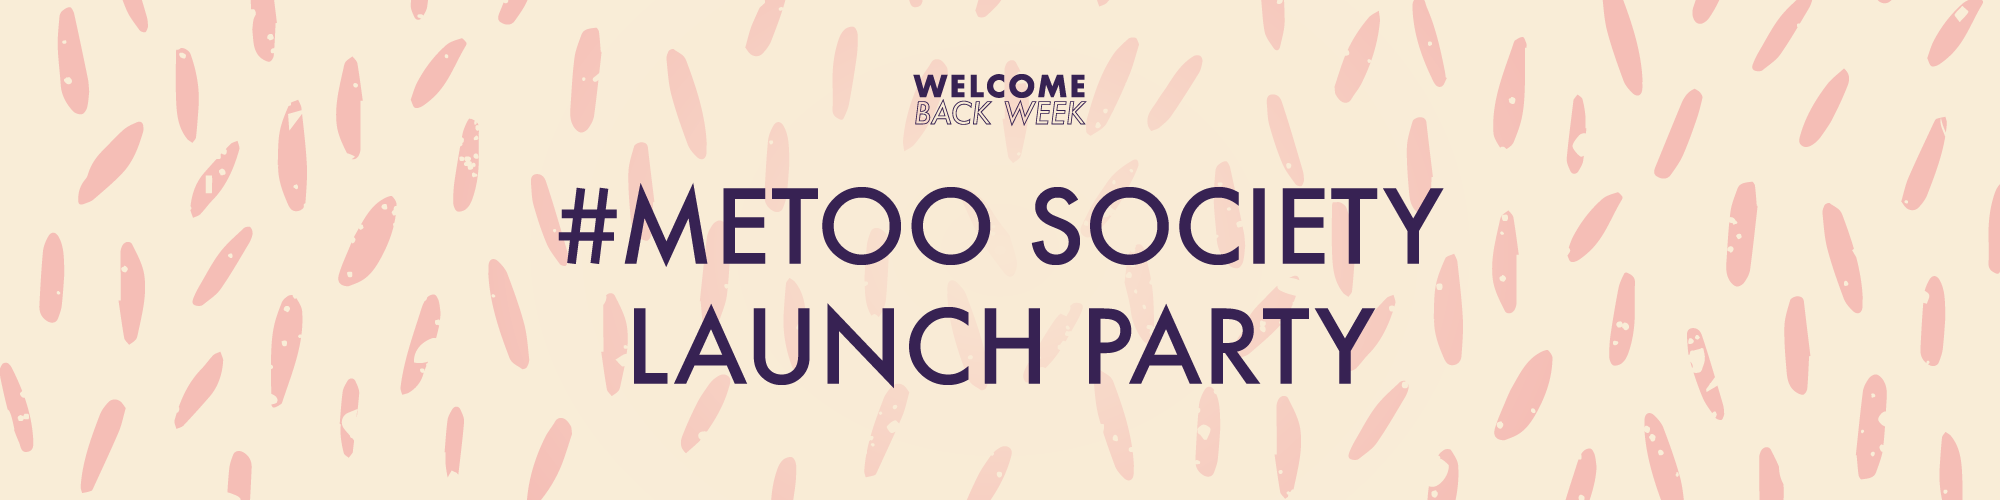 #MeToo Society Launch Party